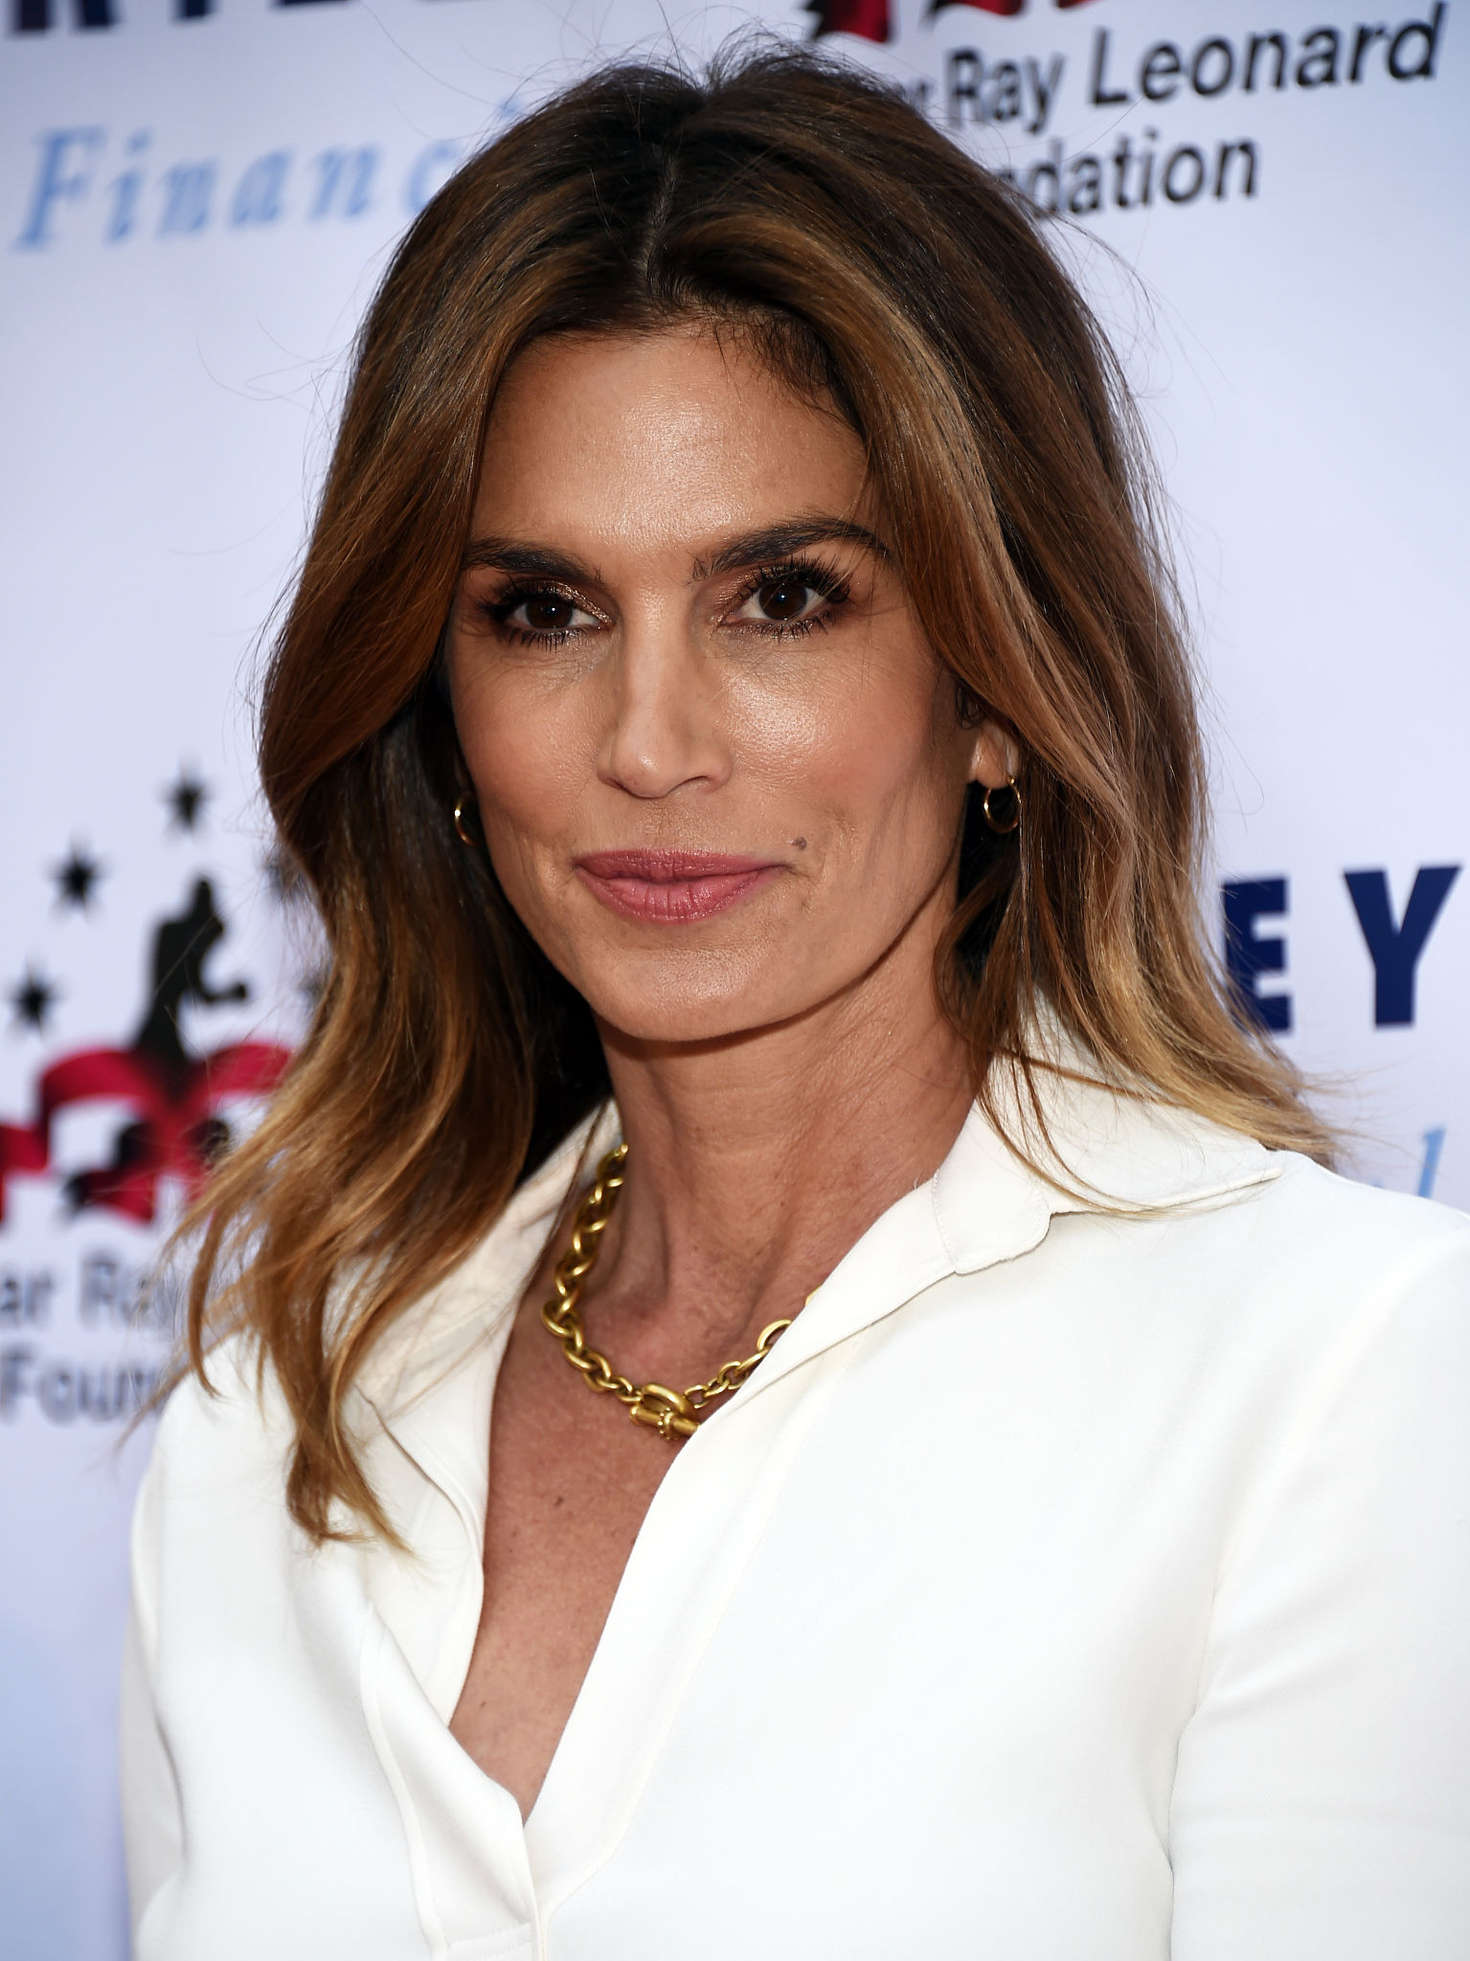 cindy crawford - 7th annual big fighters charity boxing night in